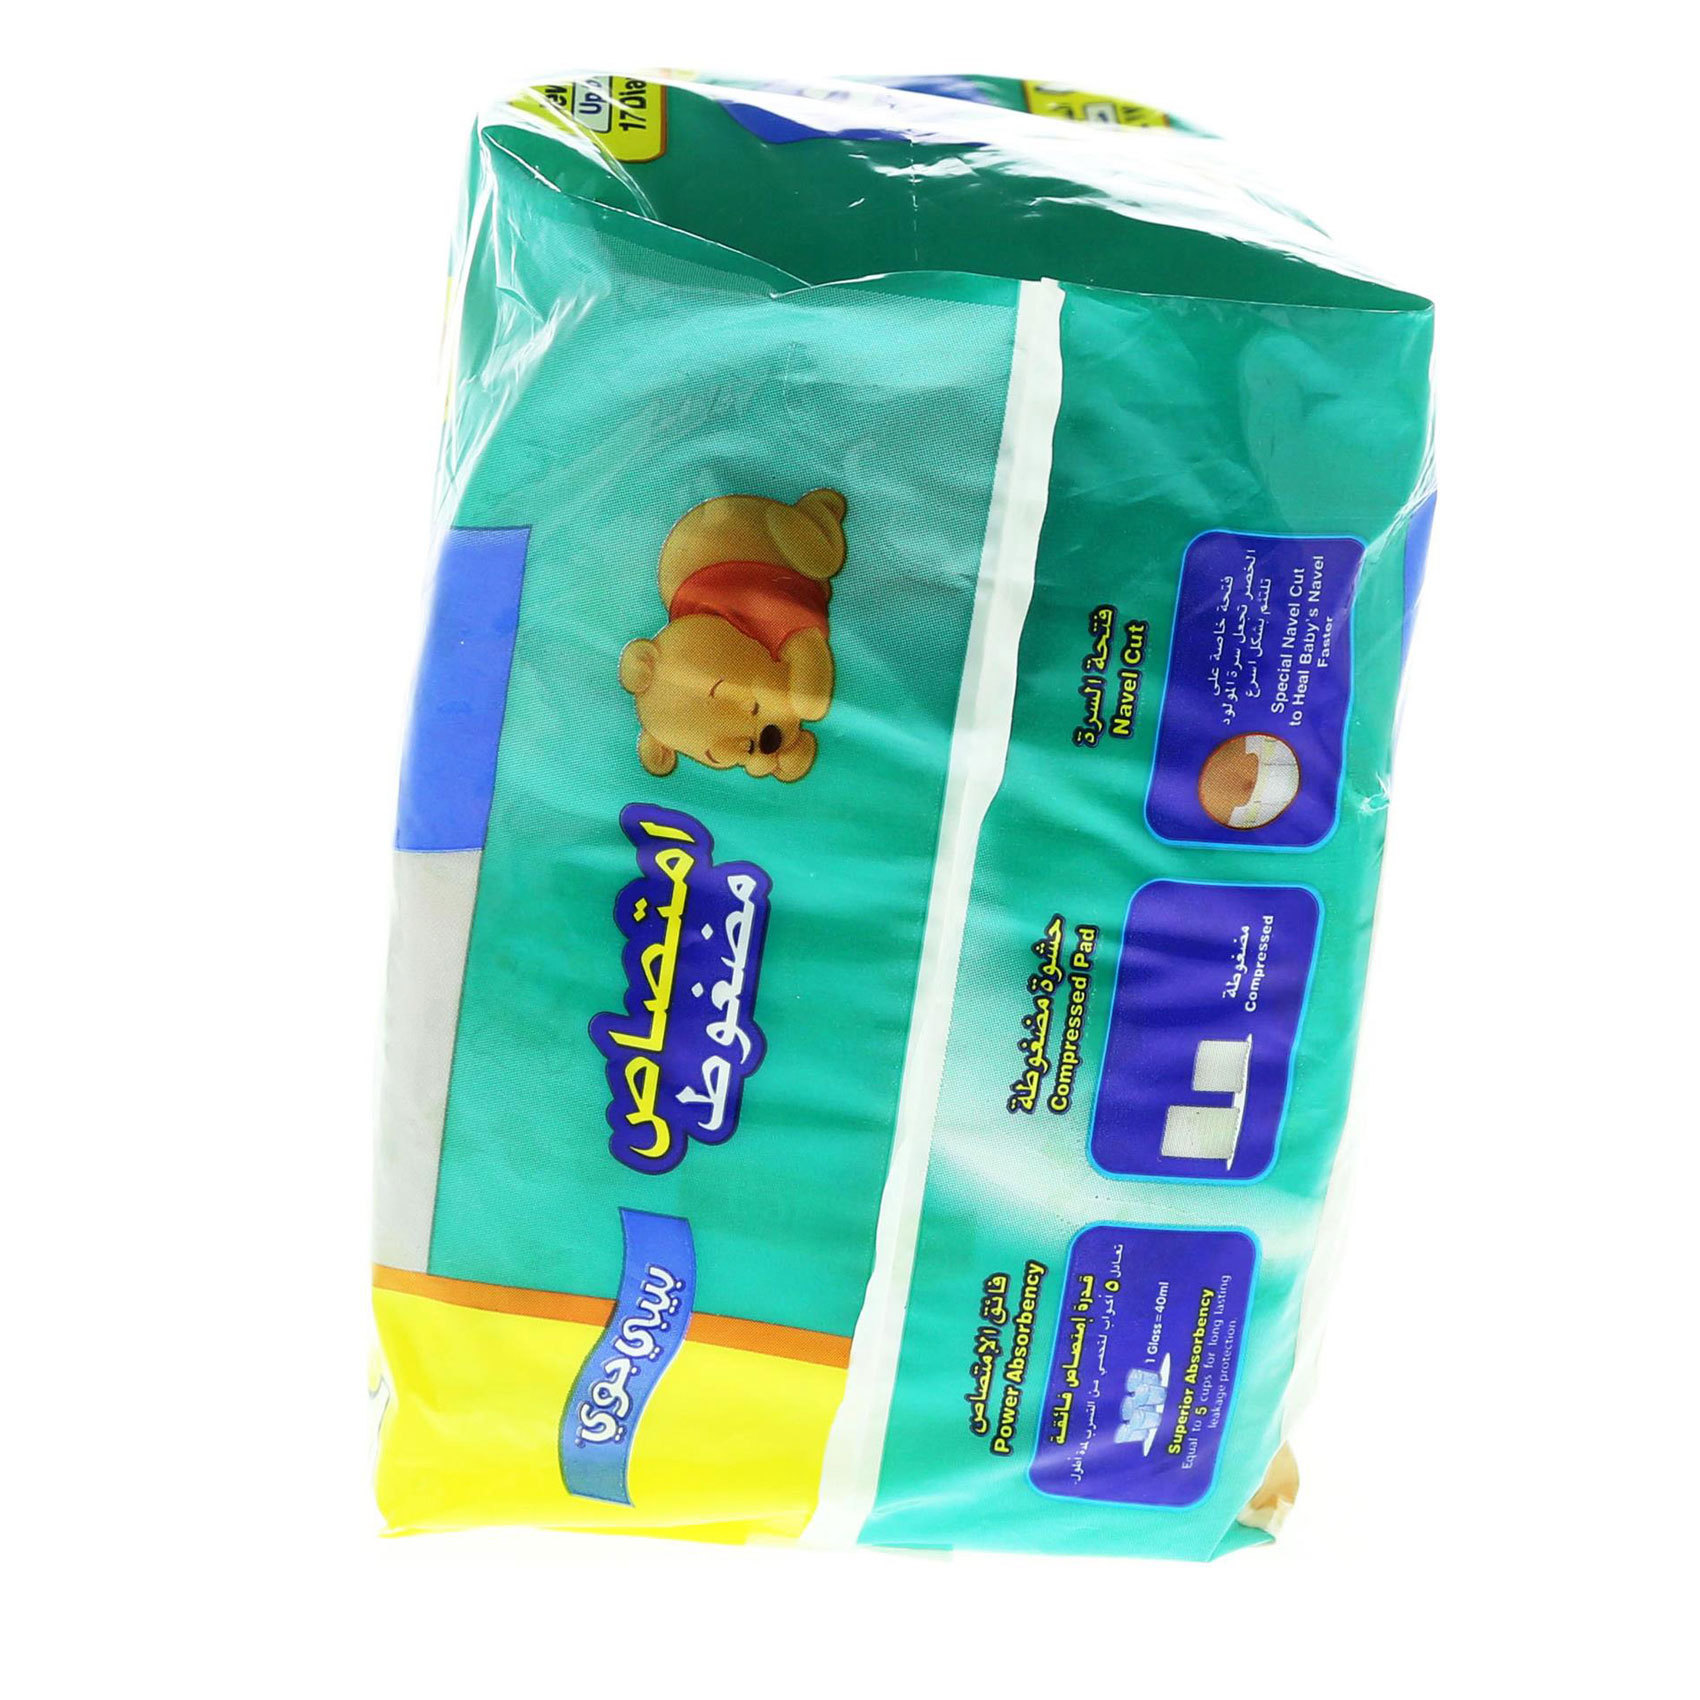 BABY JOY DIAPERS - NEWBORN 17'S